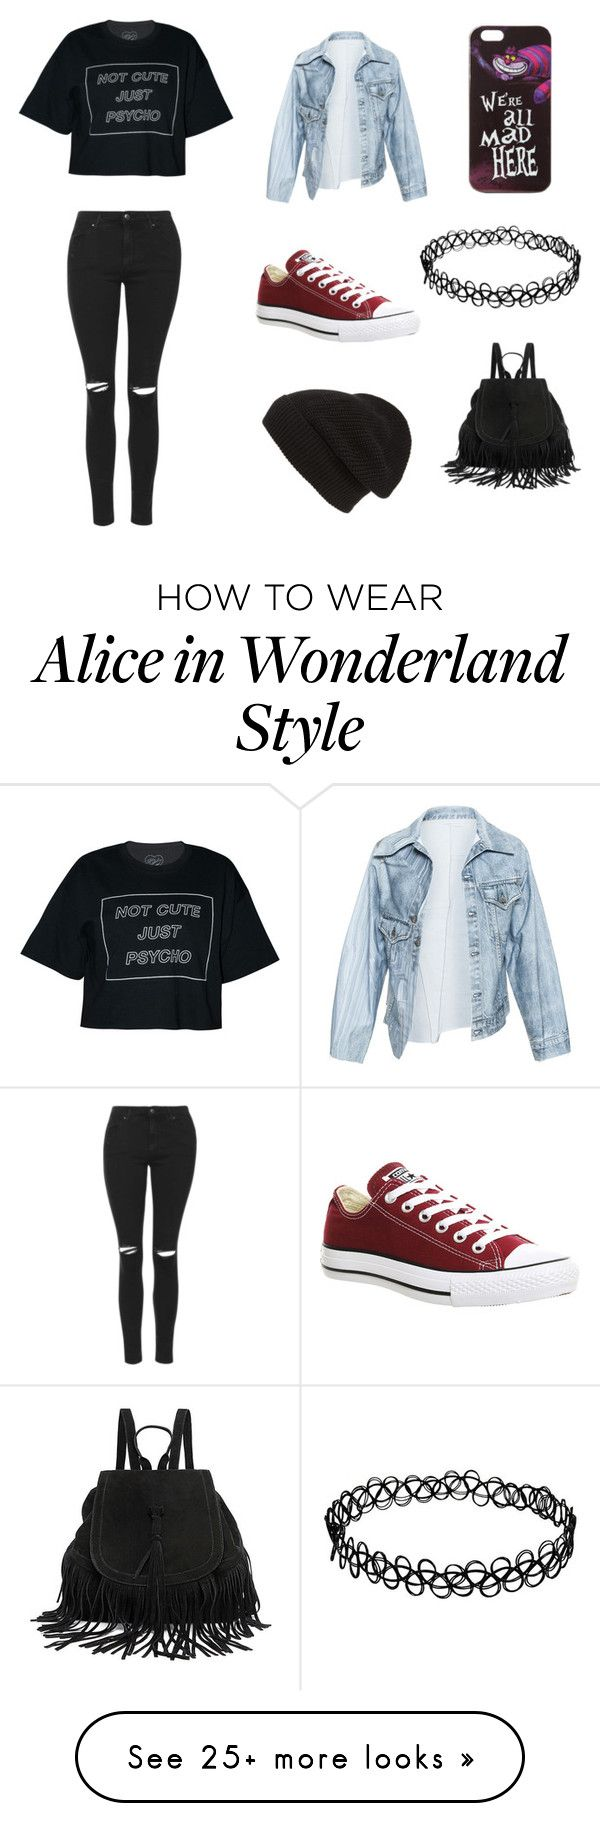 """We're all mad here...."" by yourregularnirvanafan on Polyvore featuring Faustine Steinmetz, Topshop, Converse, Phase 3 and Disney"